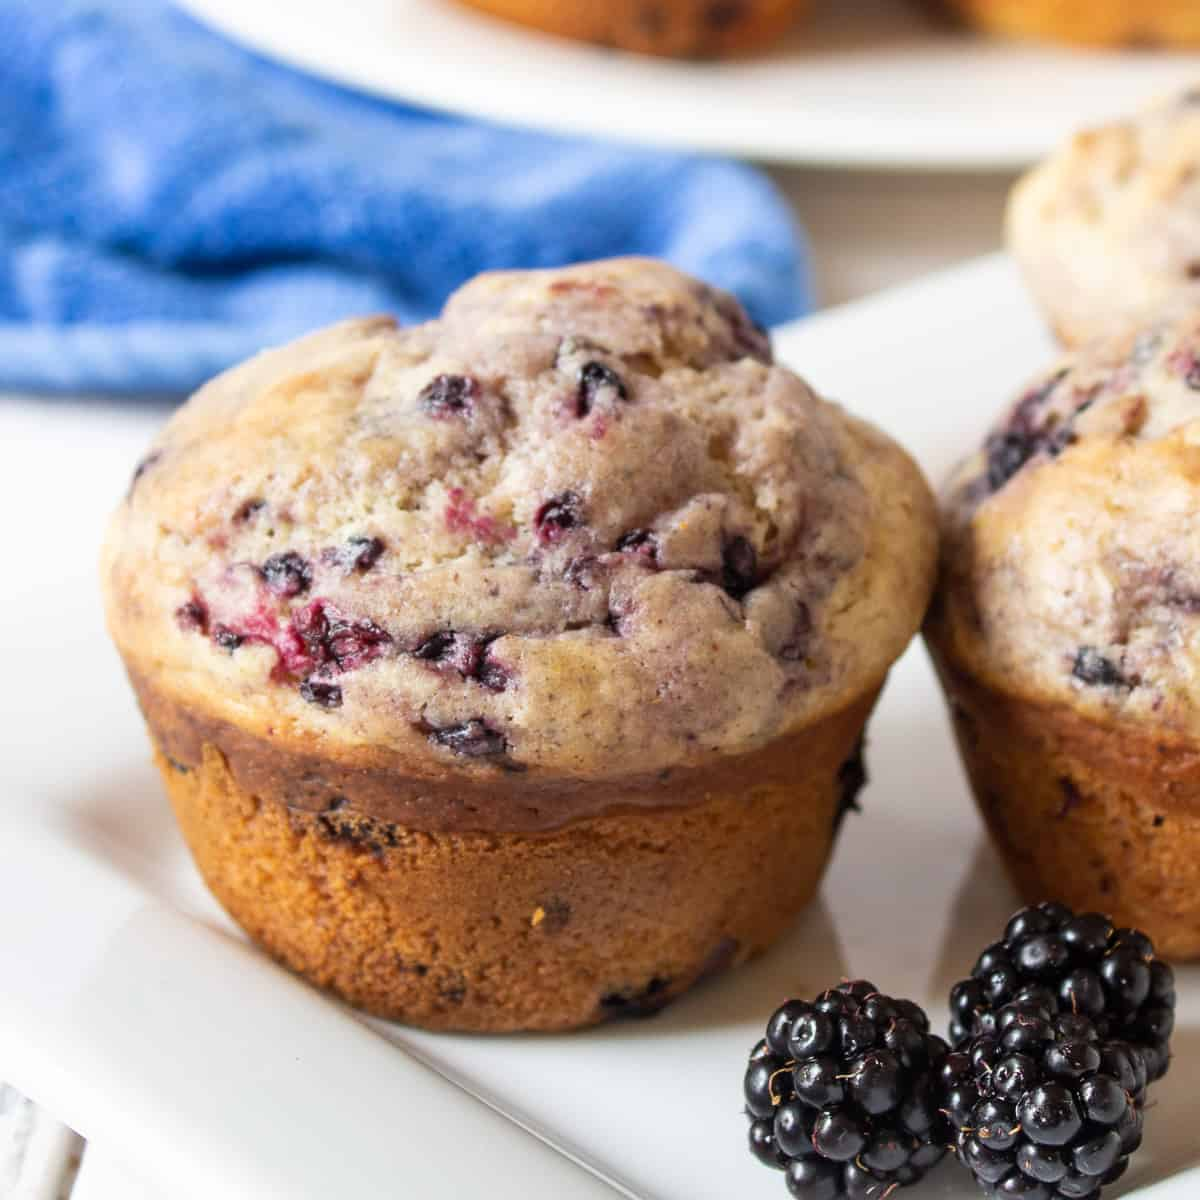 Blackberry muffins on a plate with fresh blackberries.